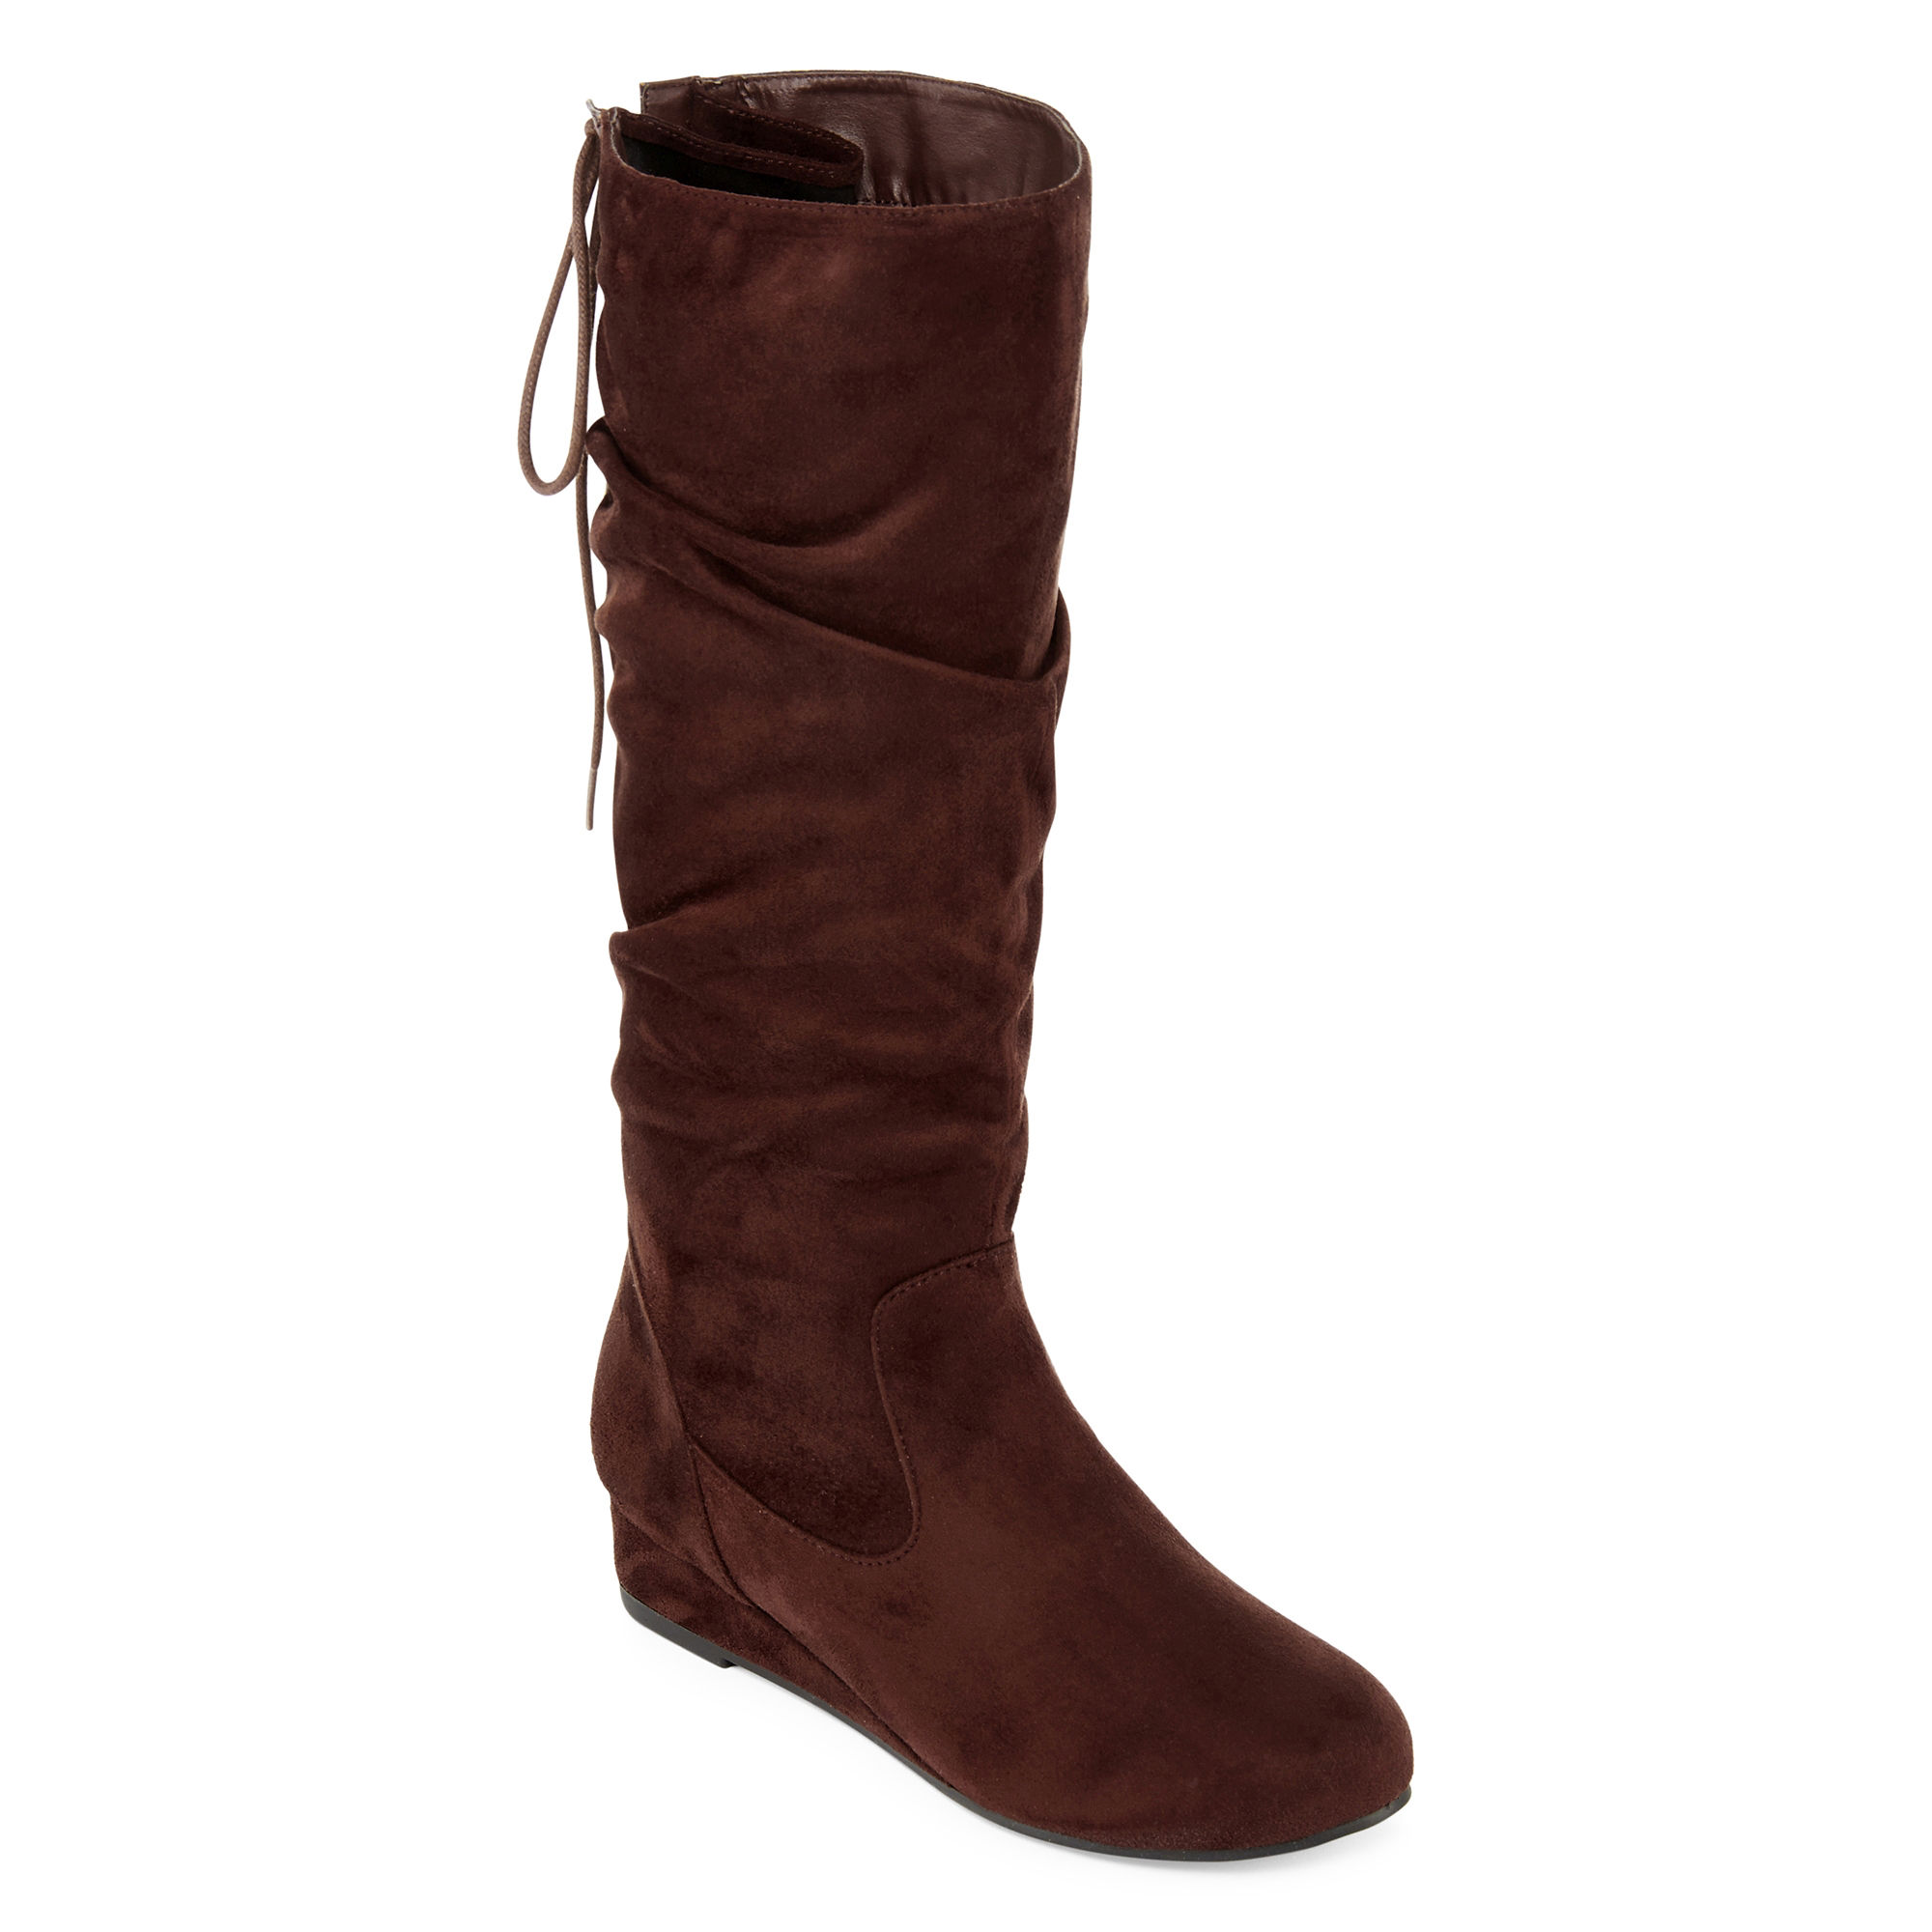 2 Lips Too Misty Womens Wide Calf Boots